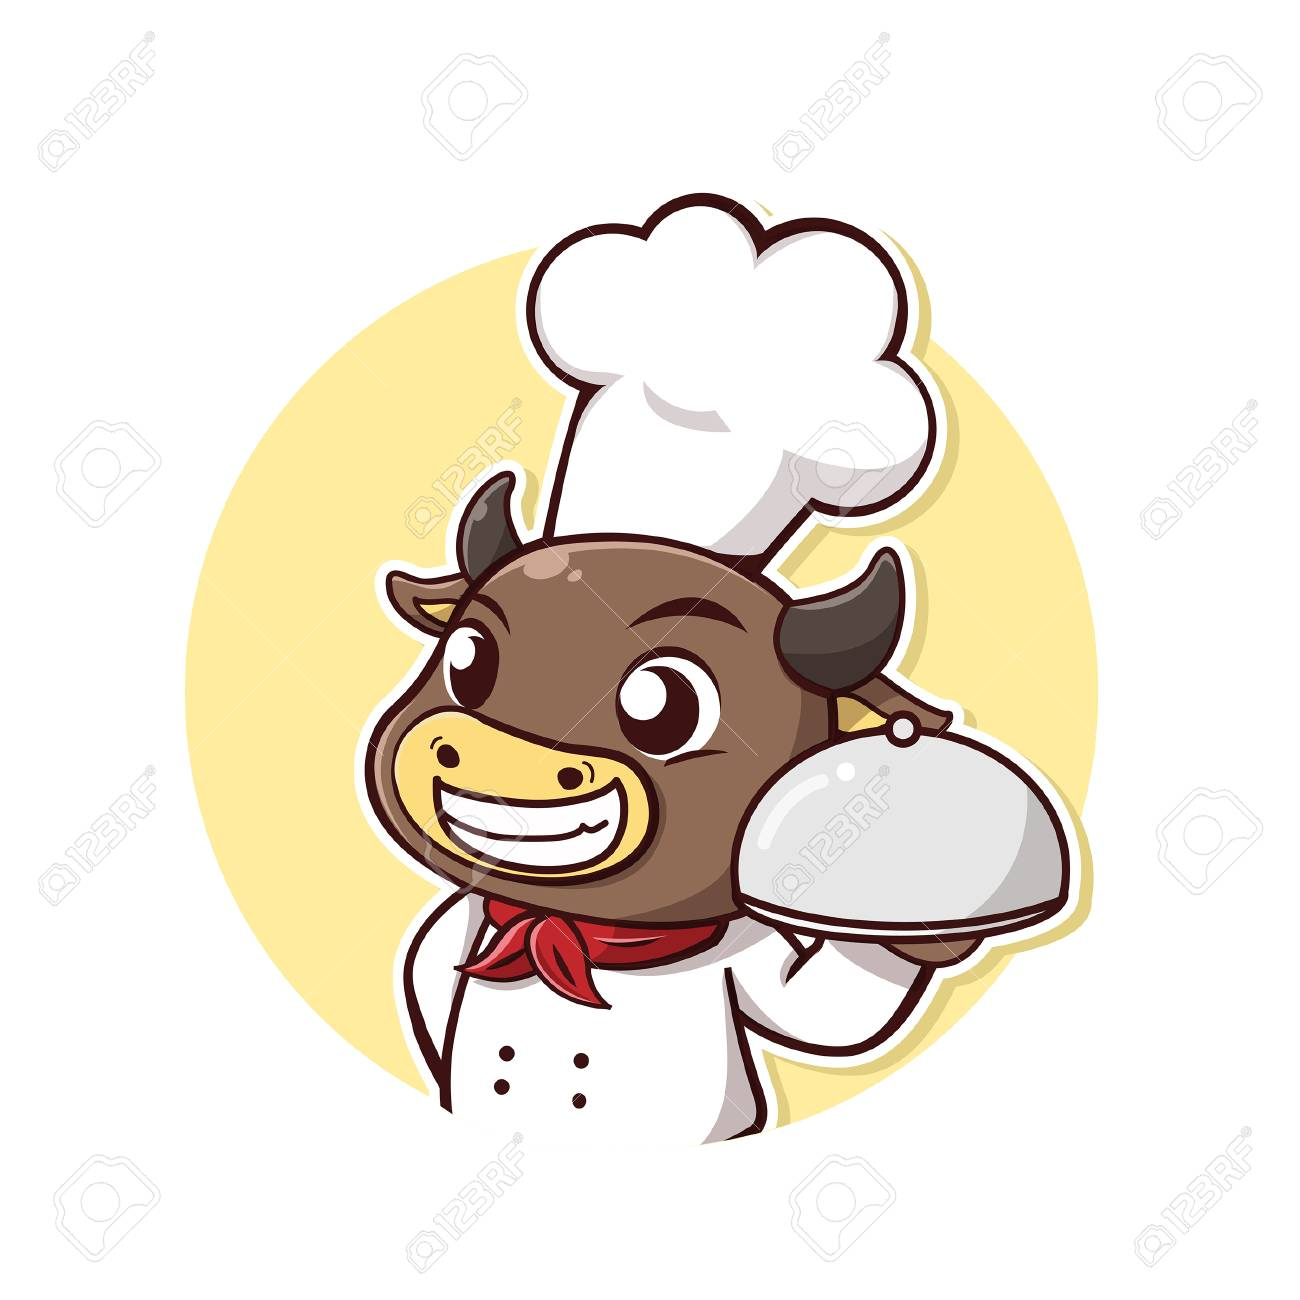 Character cow take a chef dress and steak holder. - 123424510